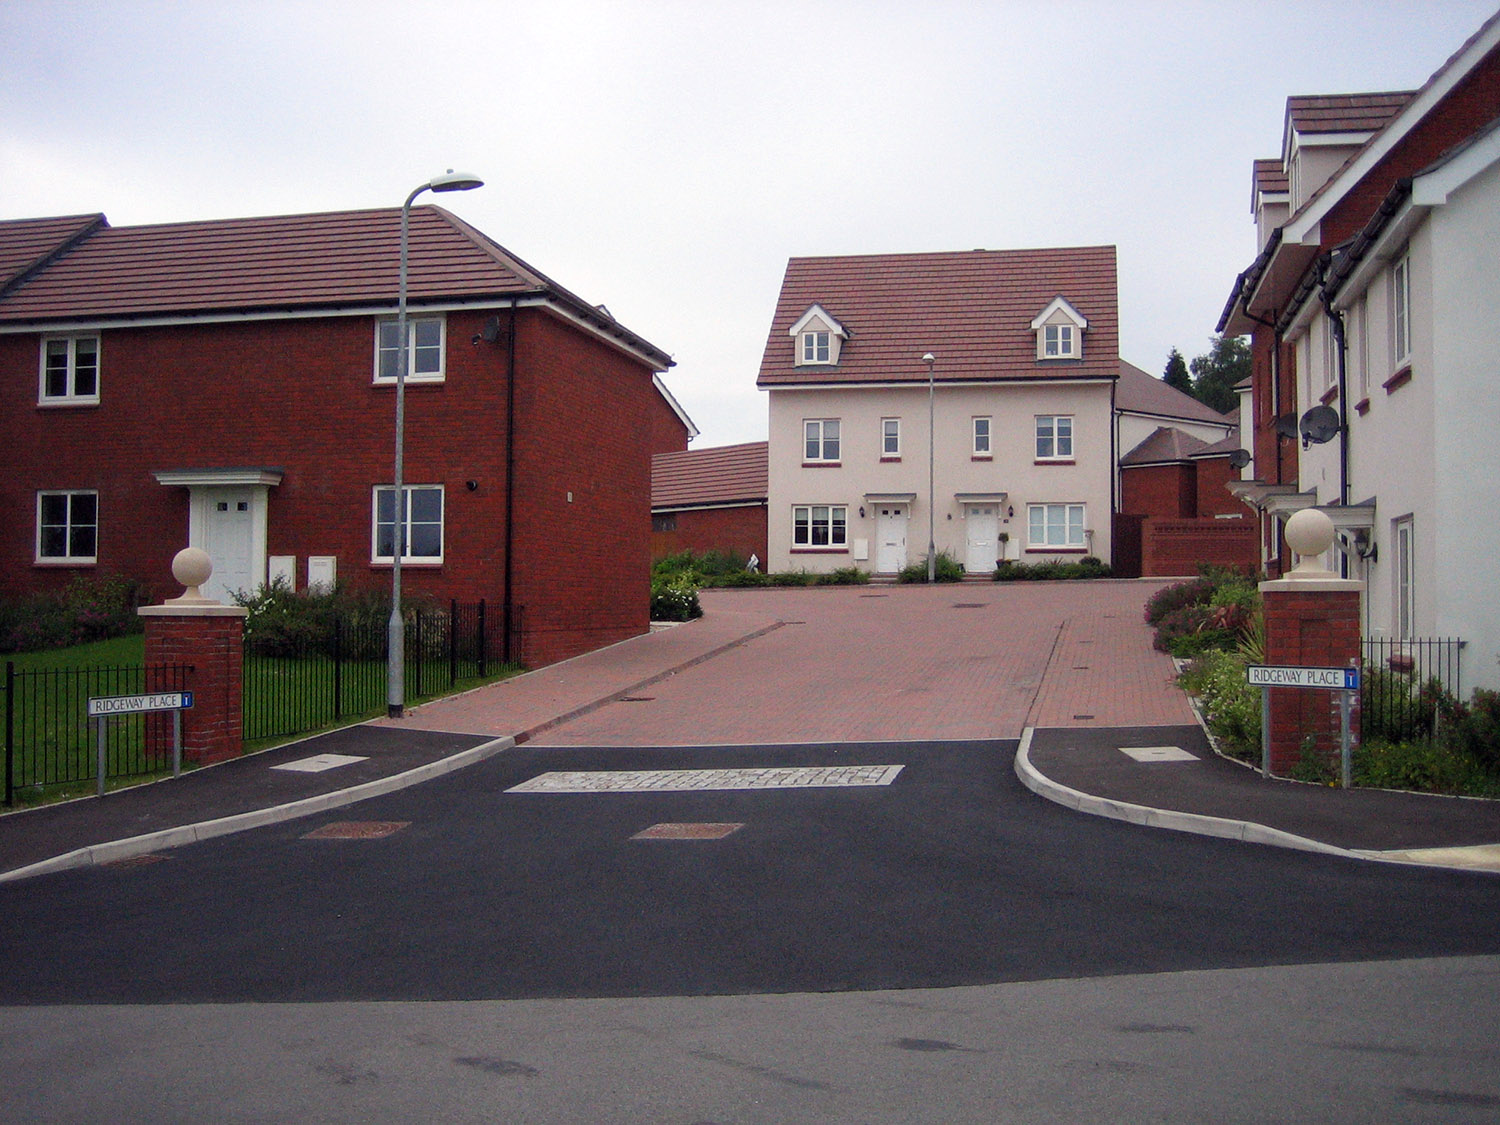 New housing is often found in estates on the outskirts